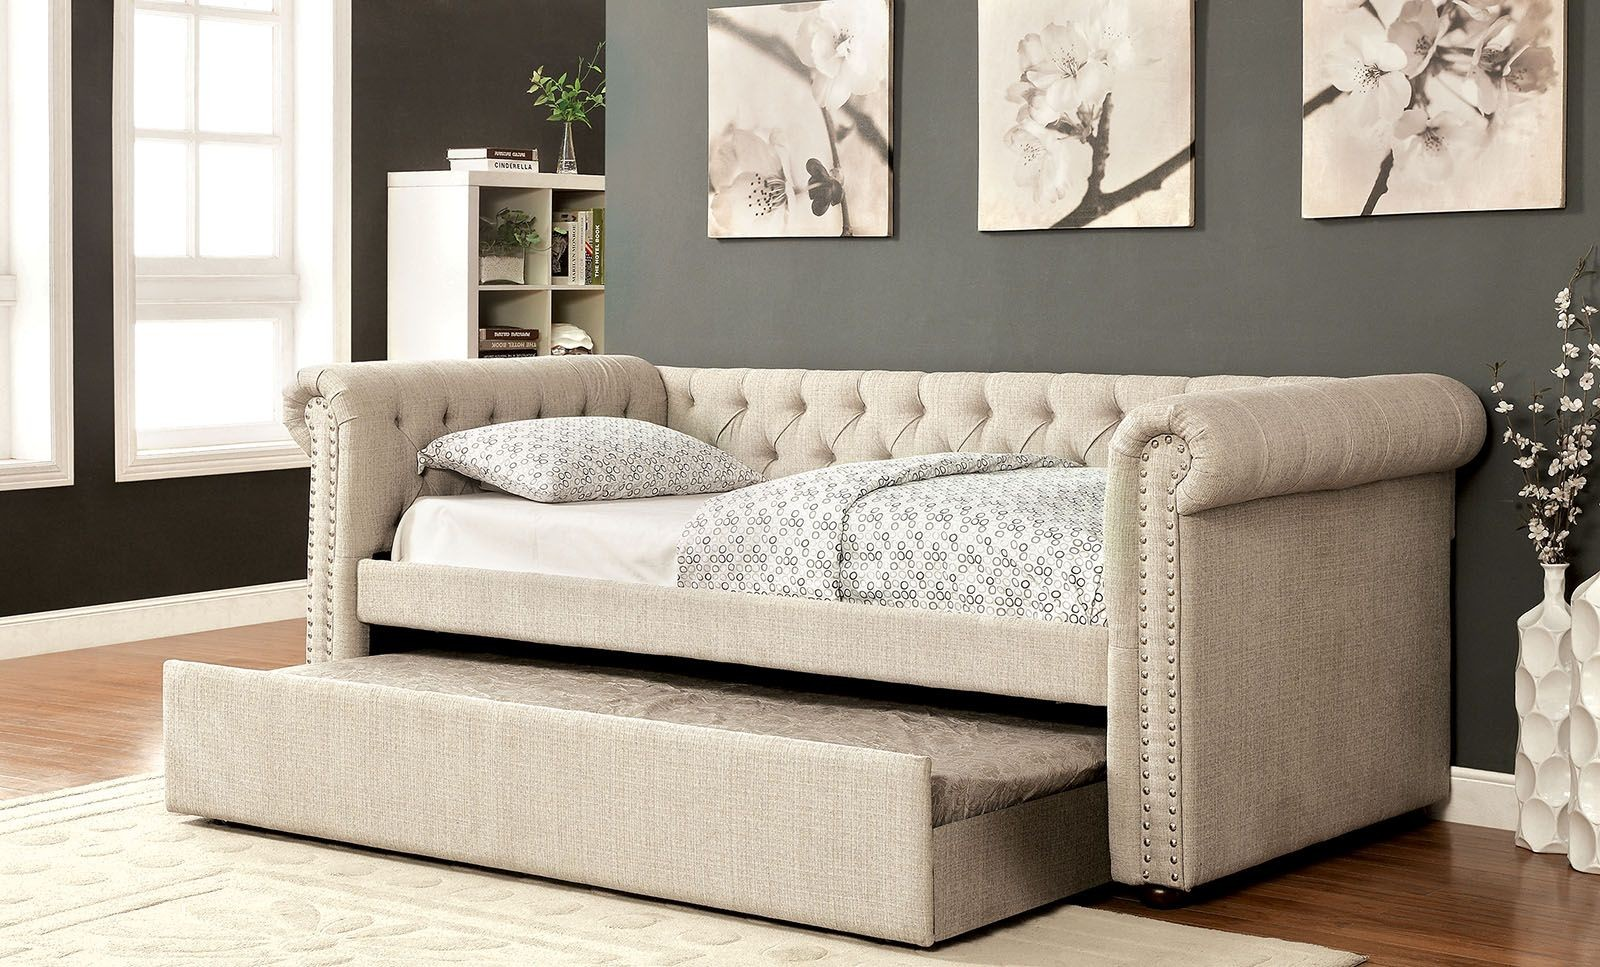 Leanna Beige Trundle Daybed From Furniture Of America